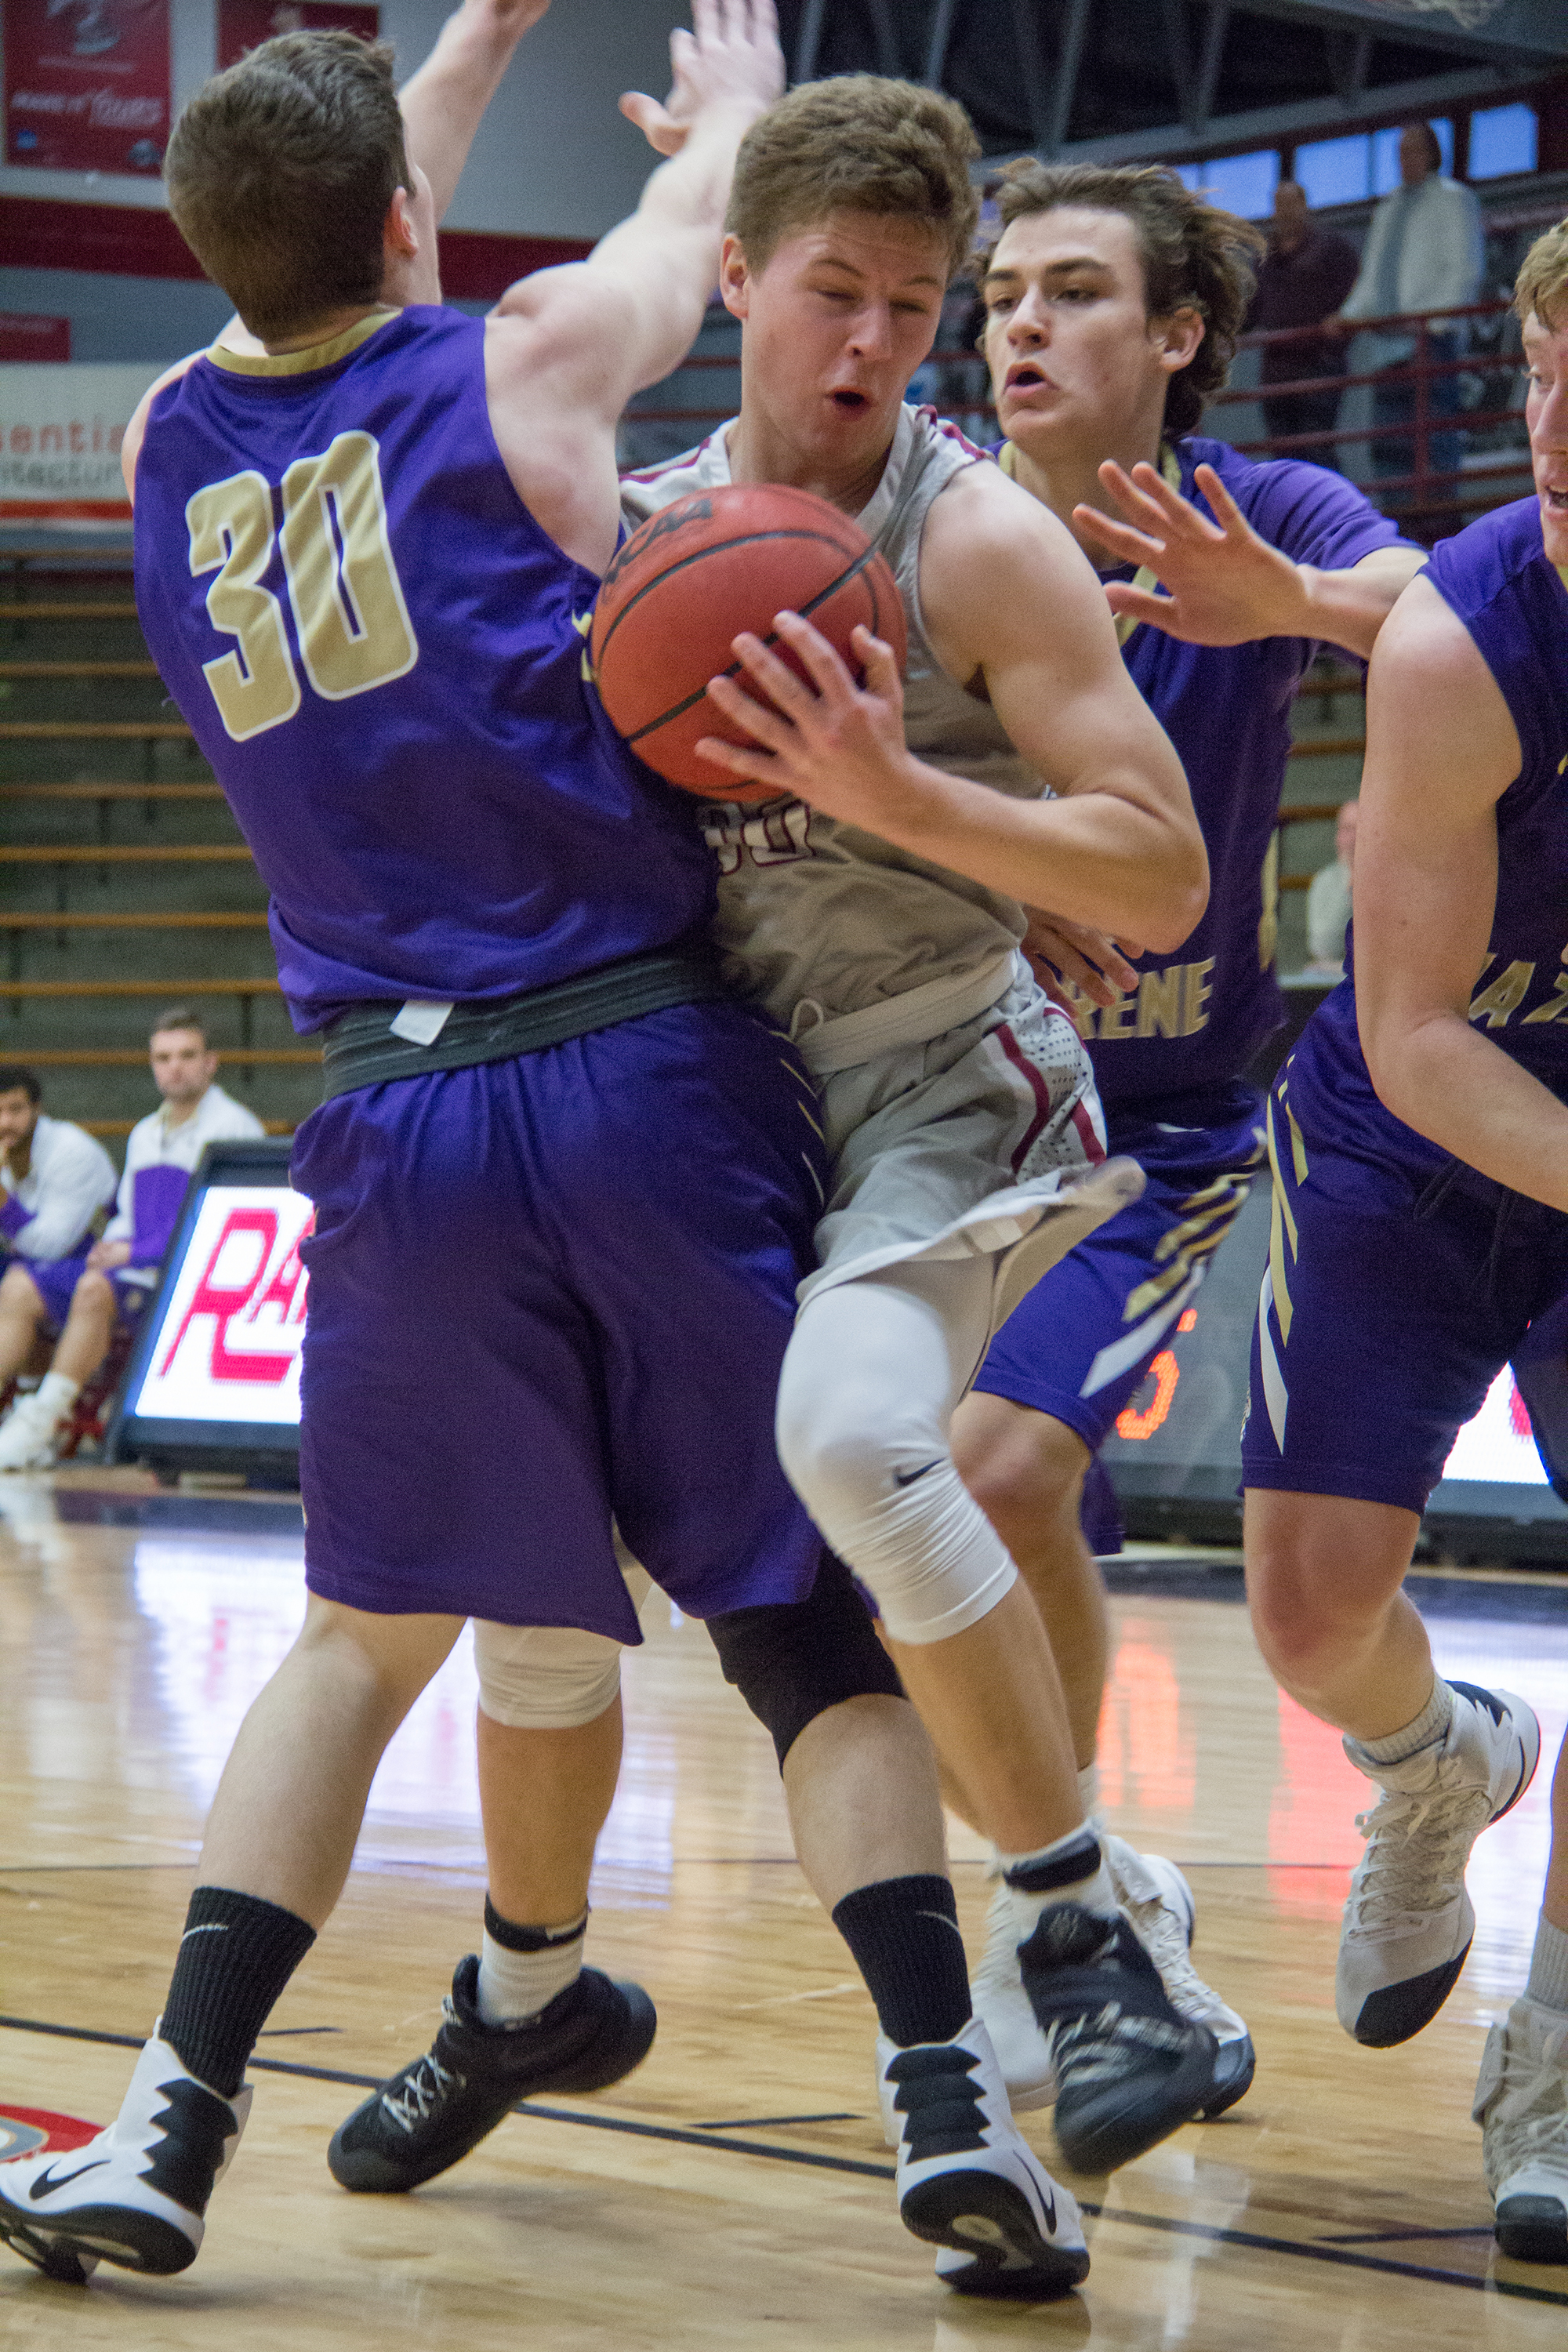 Junior Guard Eric Davidson tries to get through two defenders in the win against Olivet Nazarene on Dec. 10. Photo by Jennifer Ulery